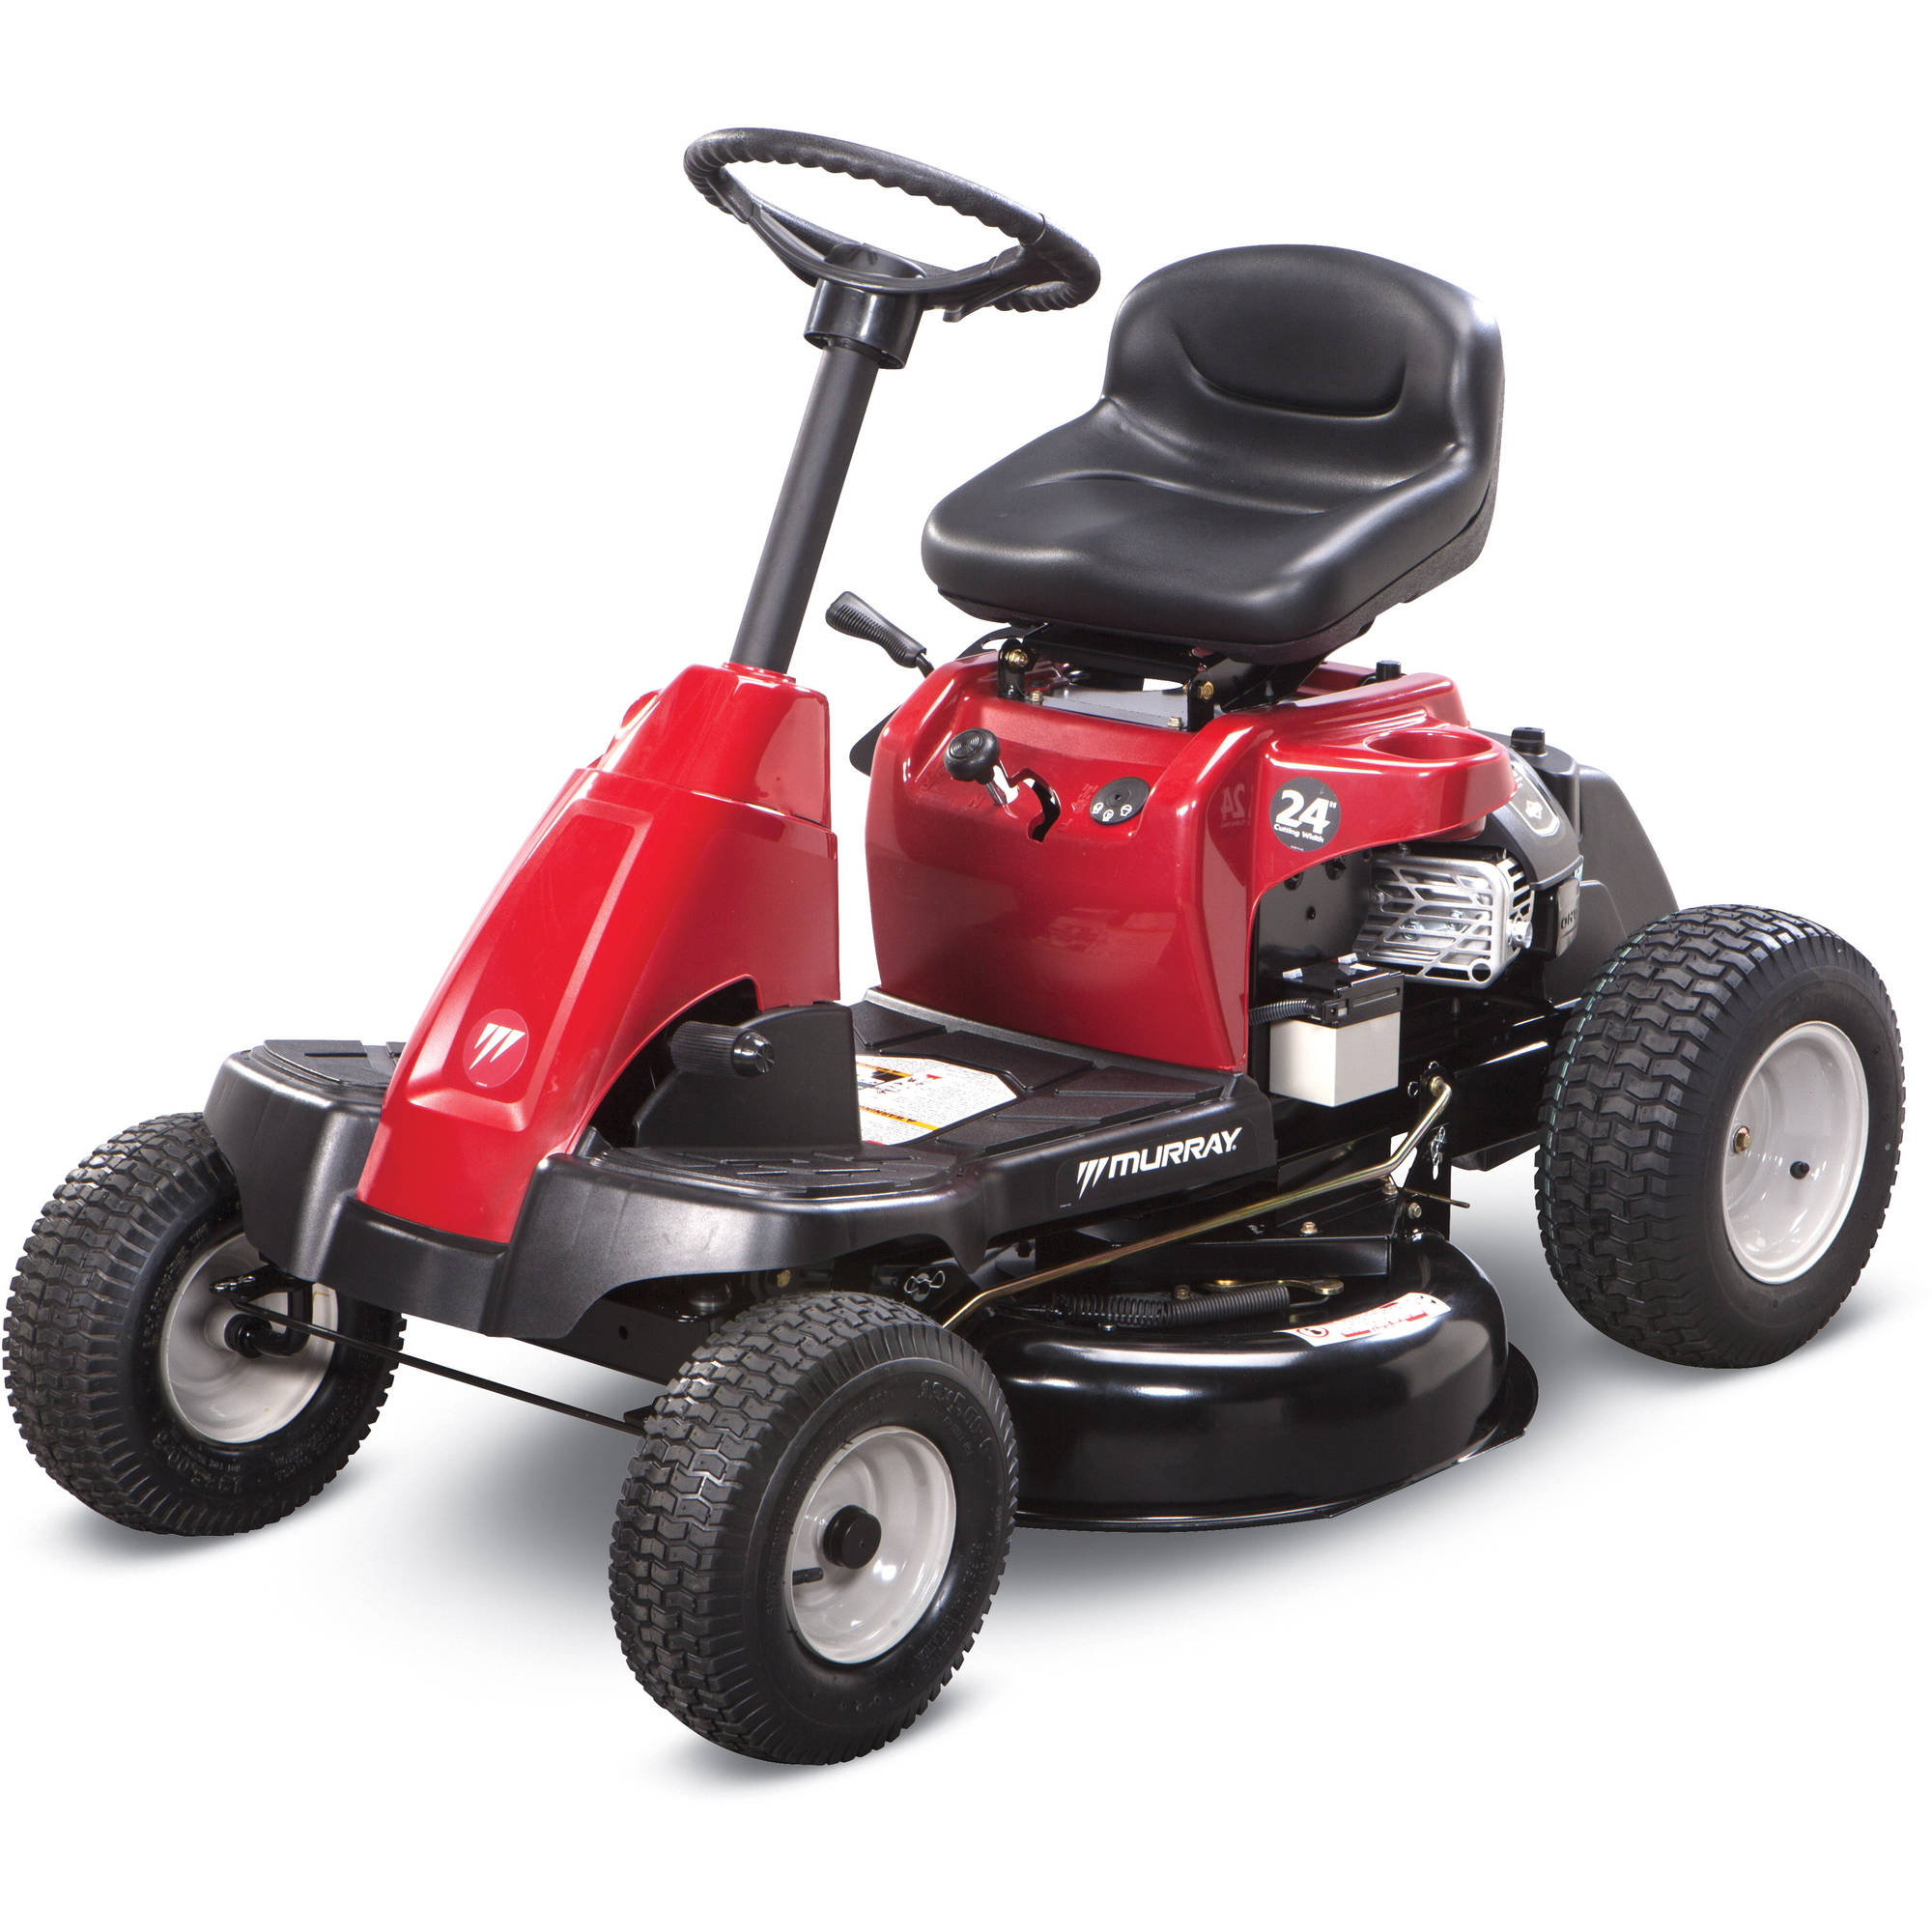 murray 24 quot  rear engine riding mower with mulch kit walmart com murray mower manual download murray mower manuals pdf